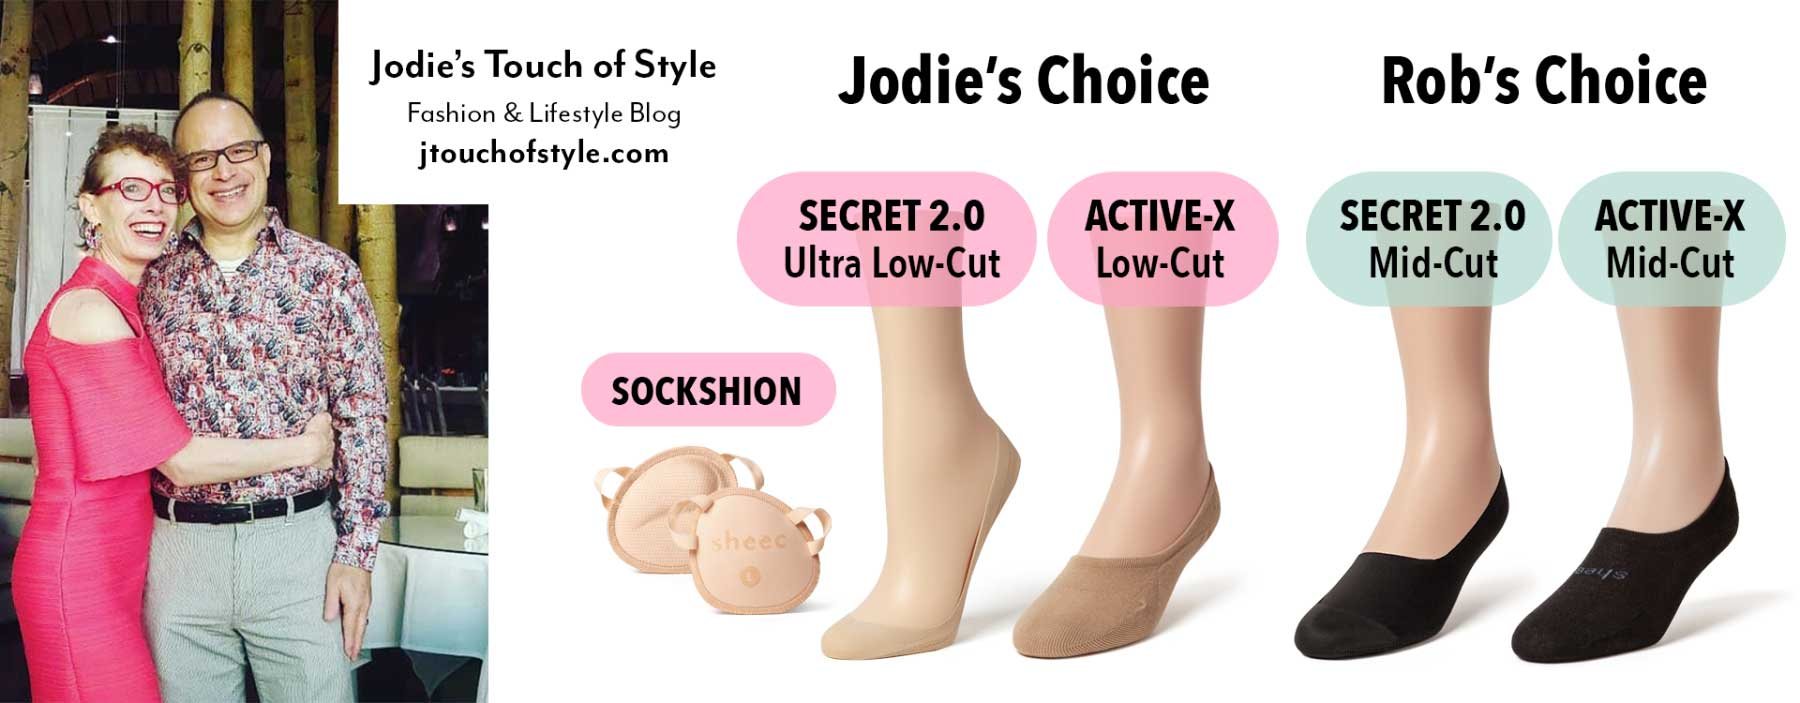 Jodie & Rob's Sheec Socks Choices